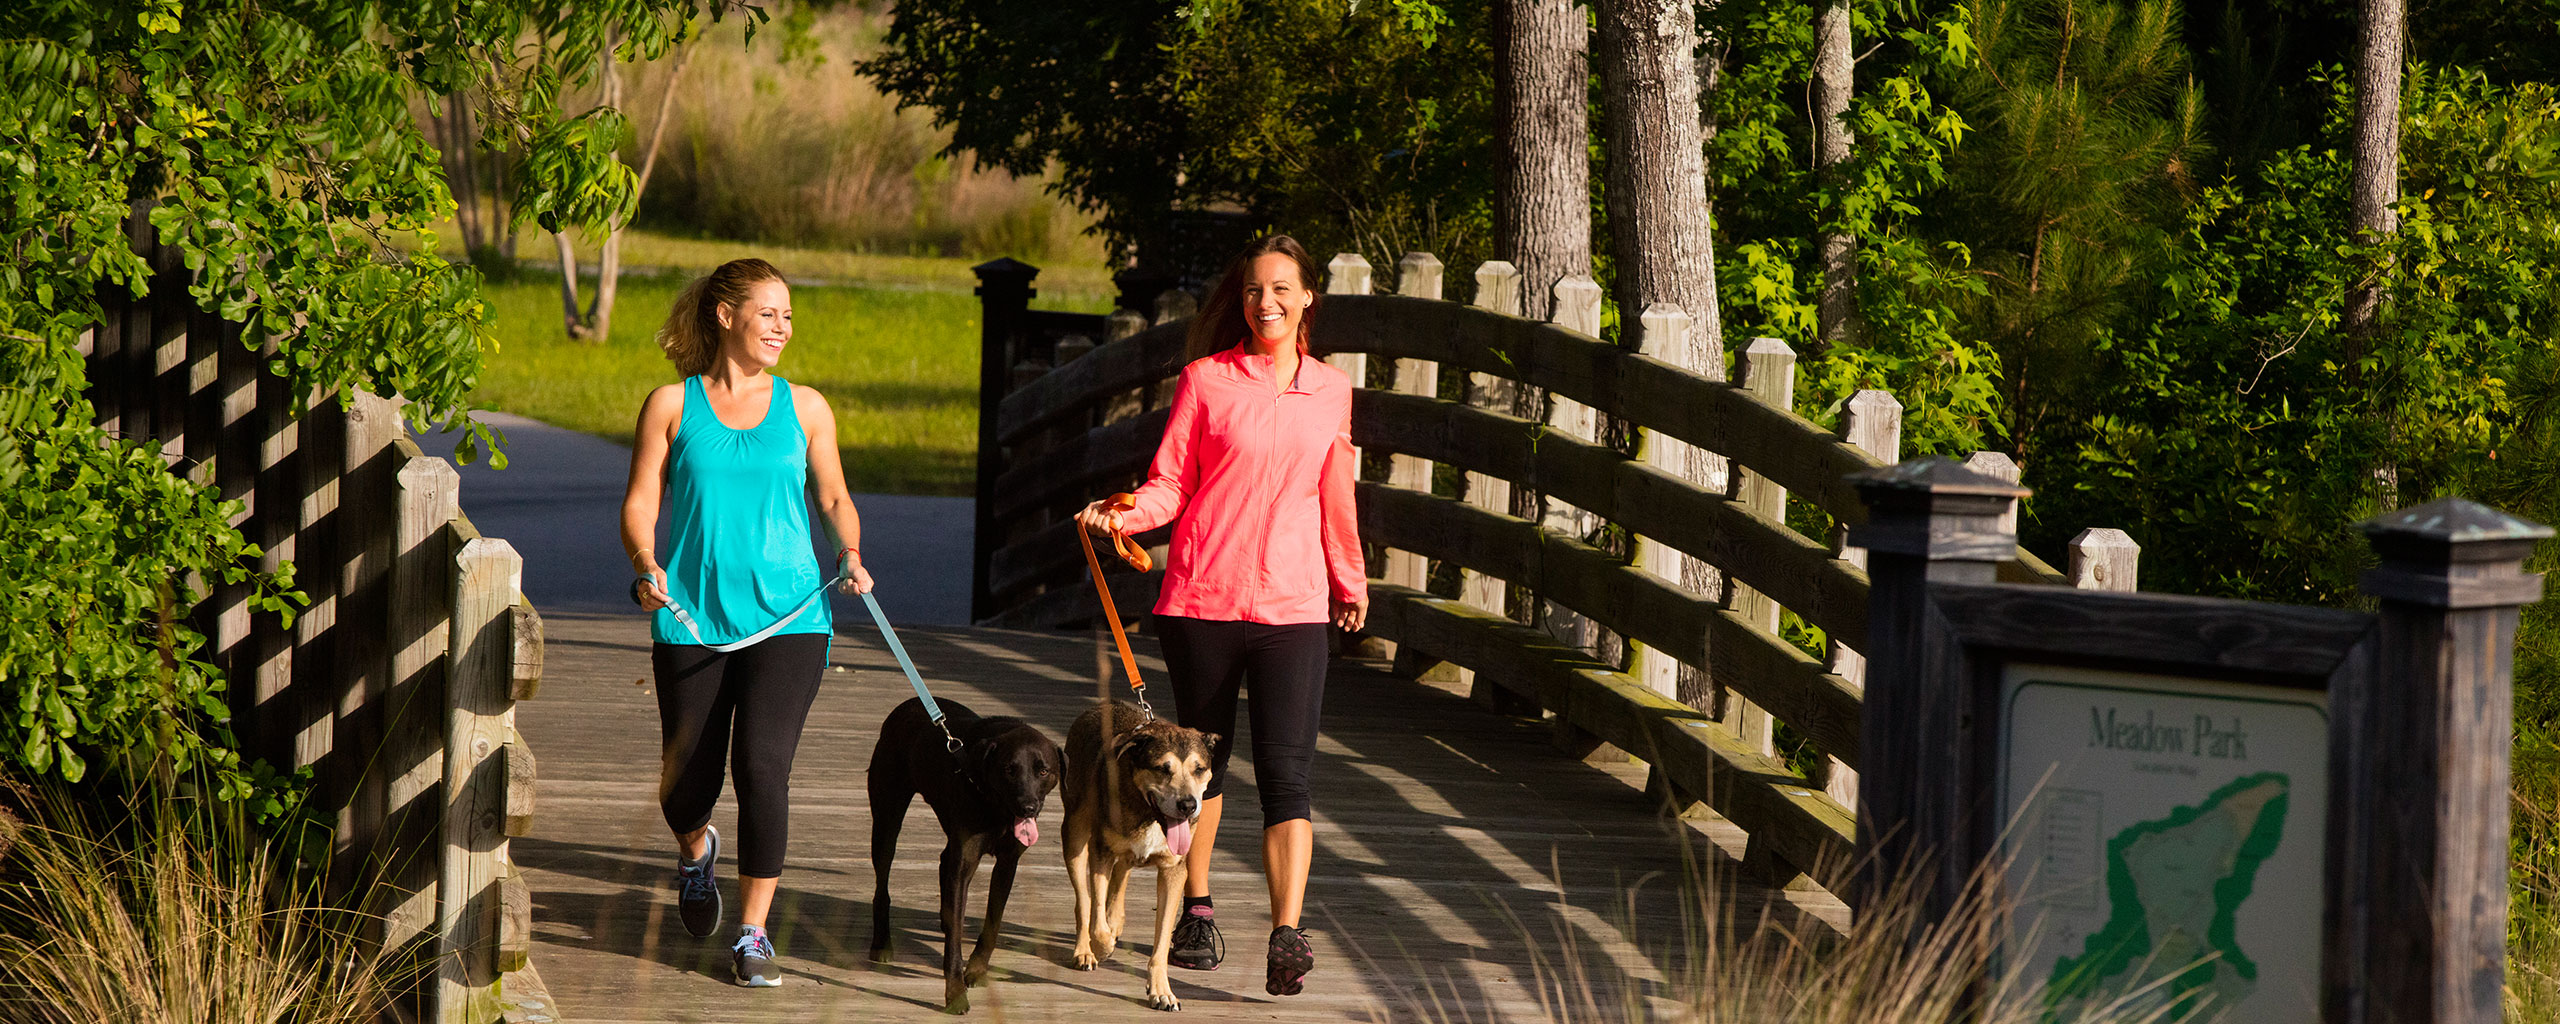 Ladies walking their dogs on the Walking and Biking trails